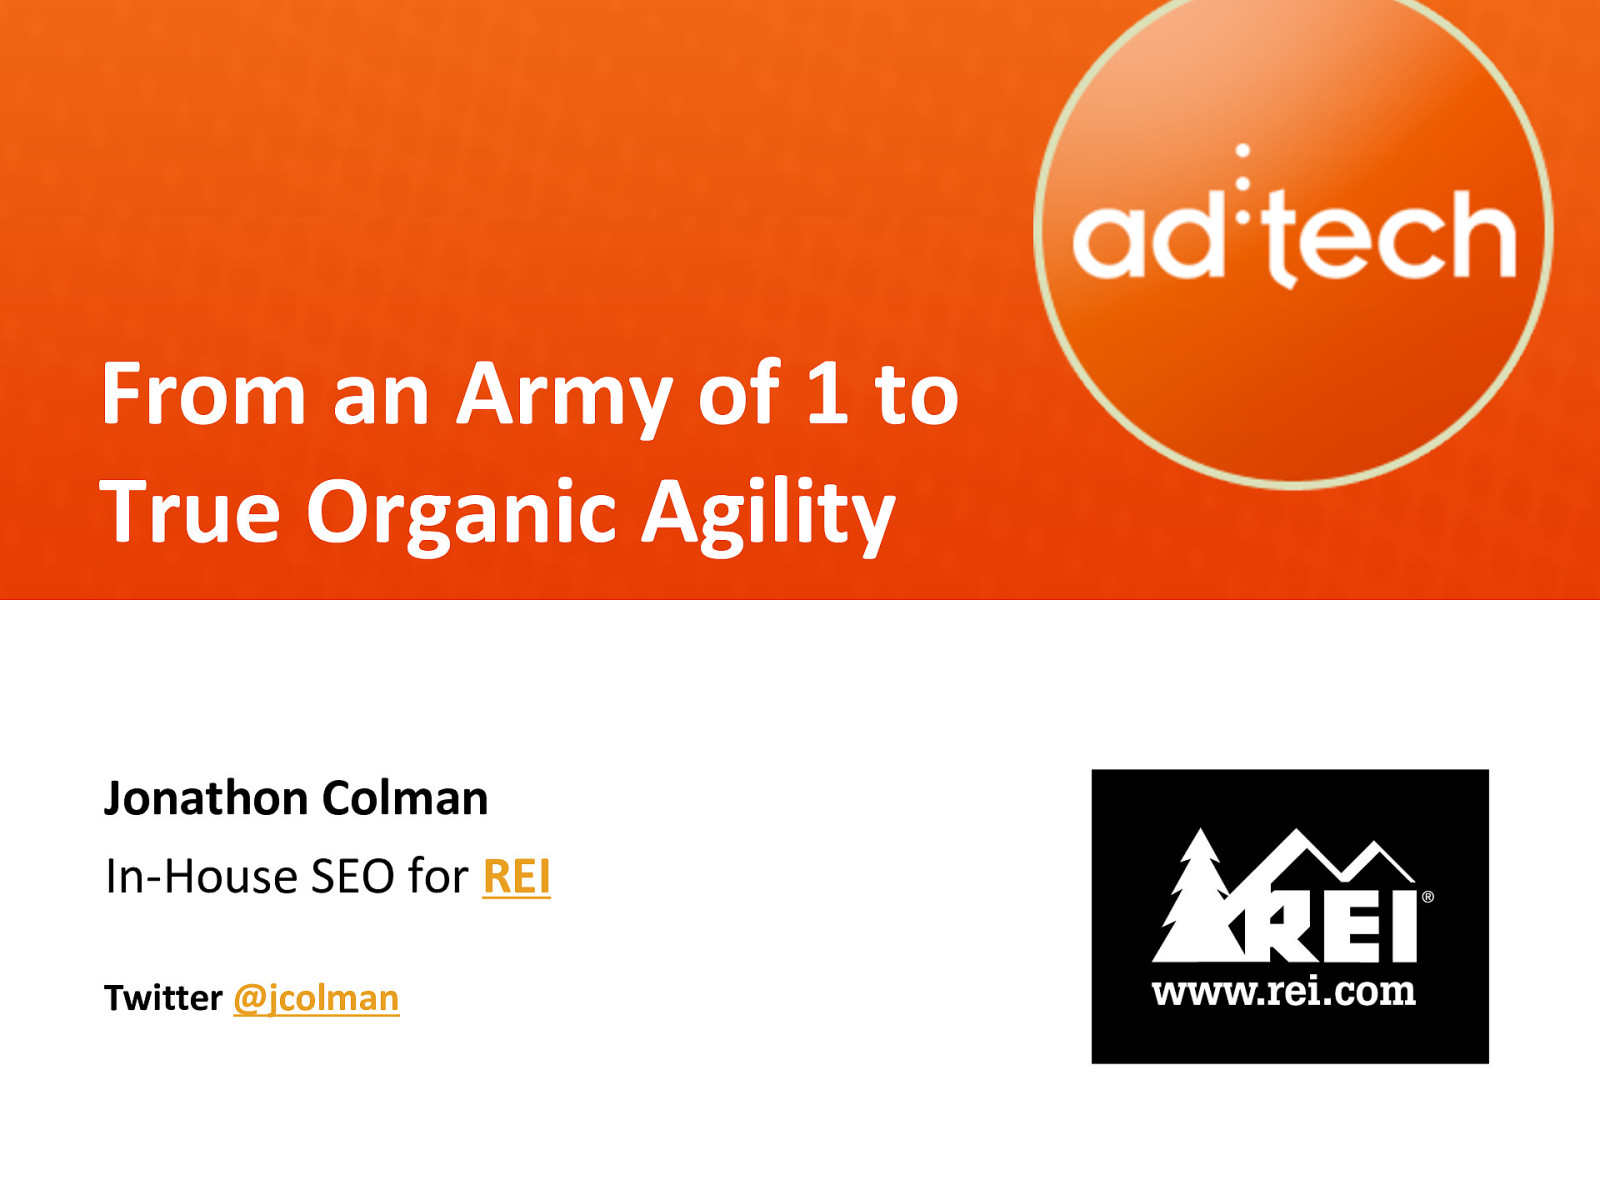 From an Army of 1 to True Organic Agility: Learn Agile Marketing from Star Wars Stormtroopers